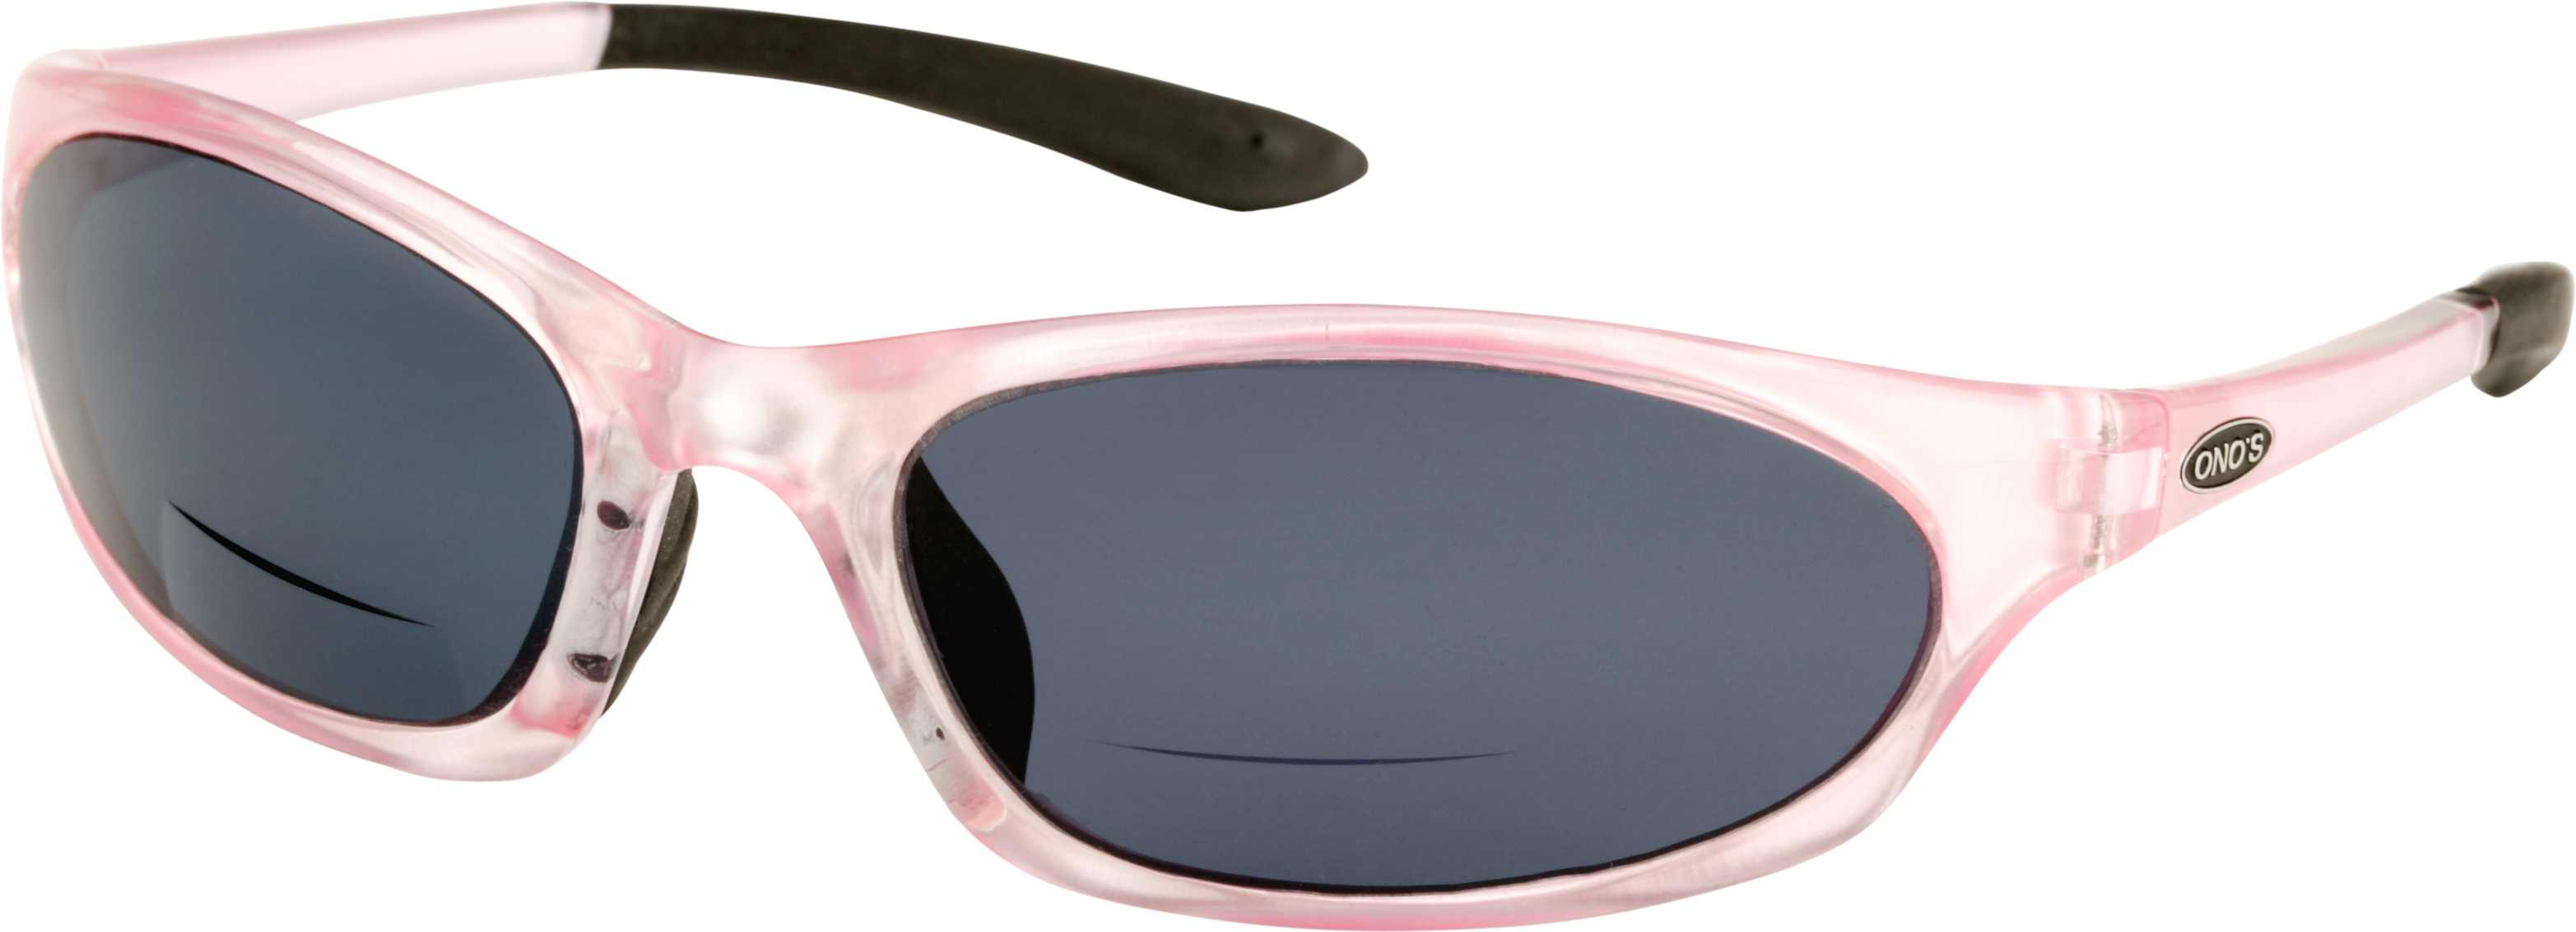 089d90d96111 Ono s Trading Company introduces three sunglass models for narrow faces